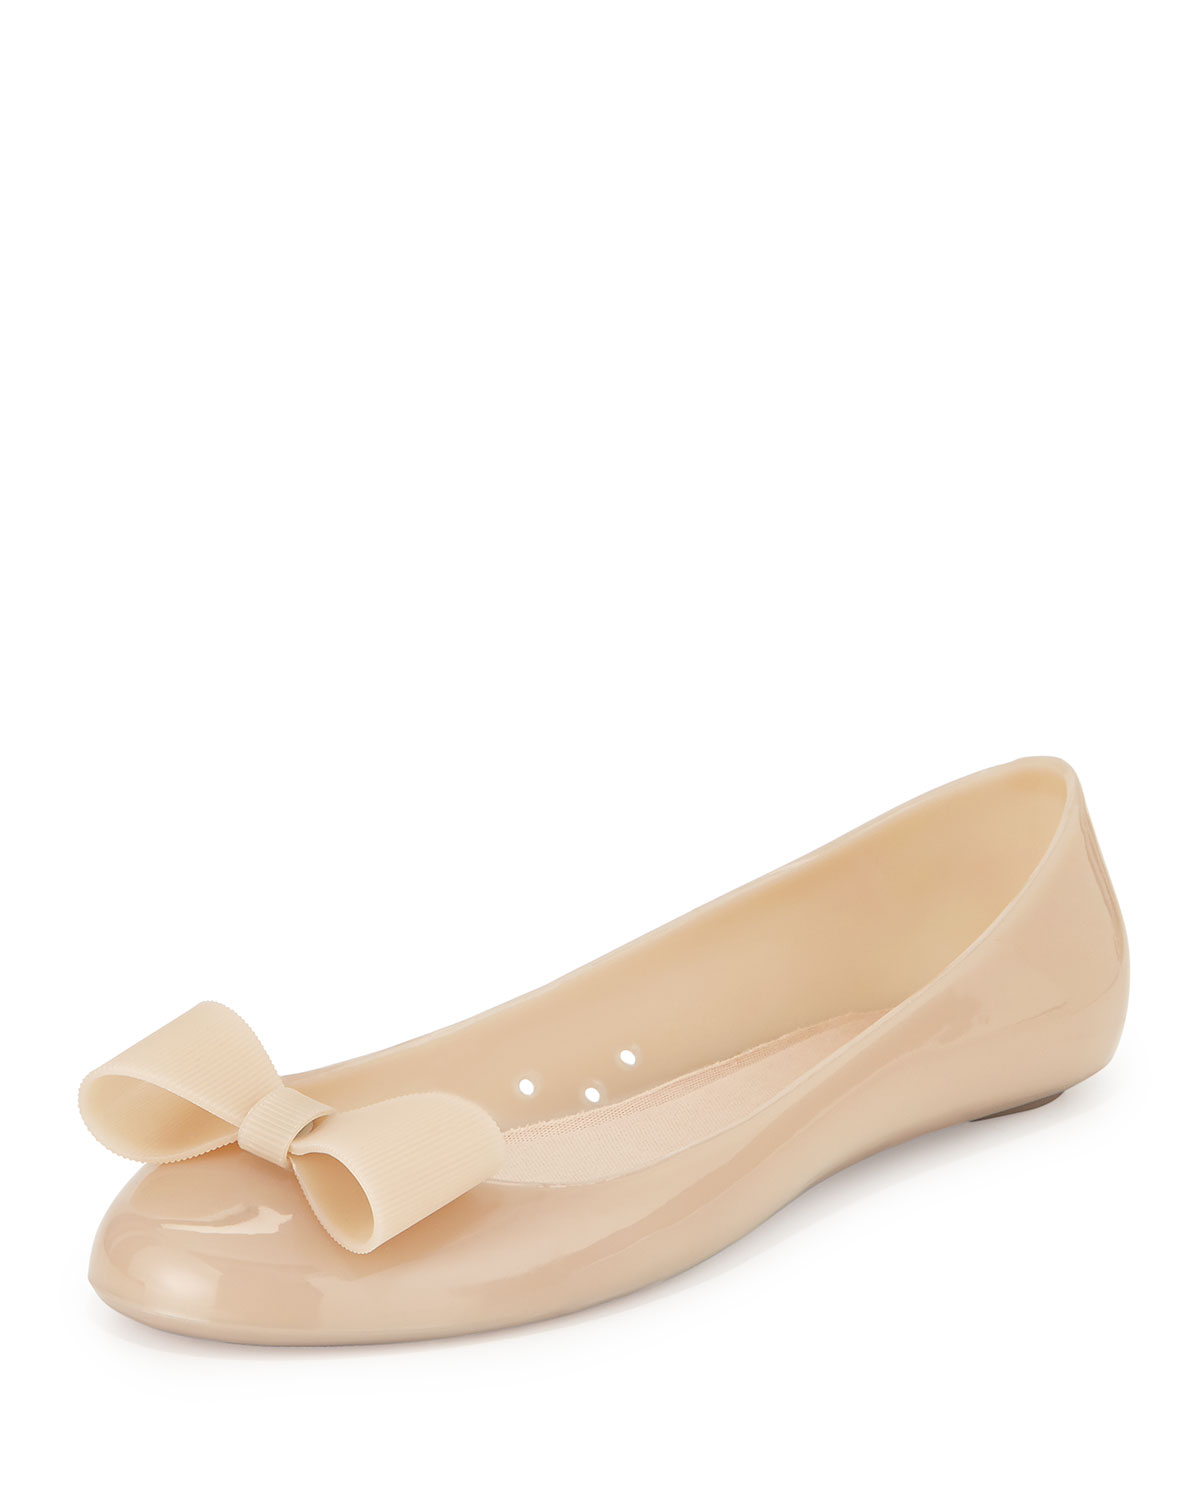 07f80544154 kate spade new york jove bow jelly ballet flat